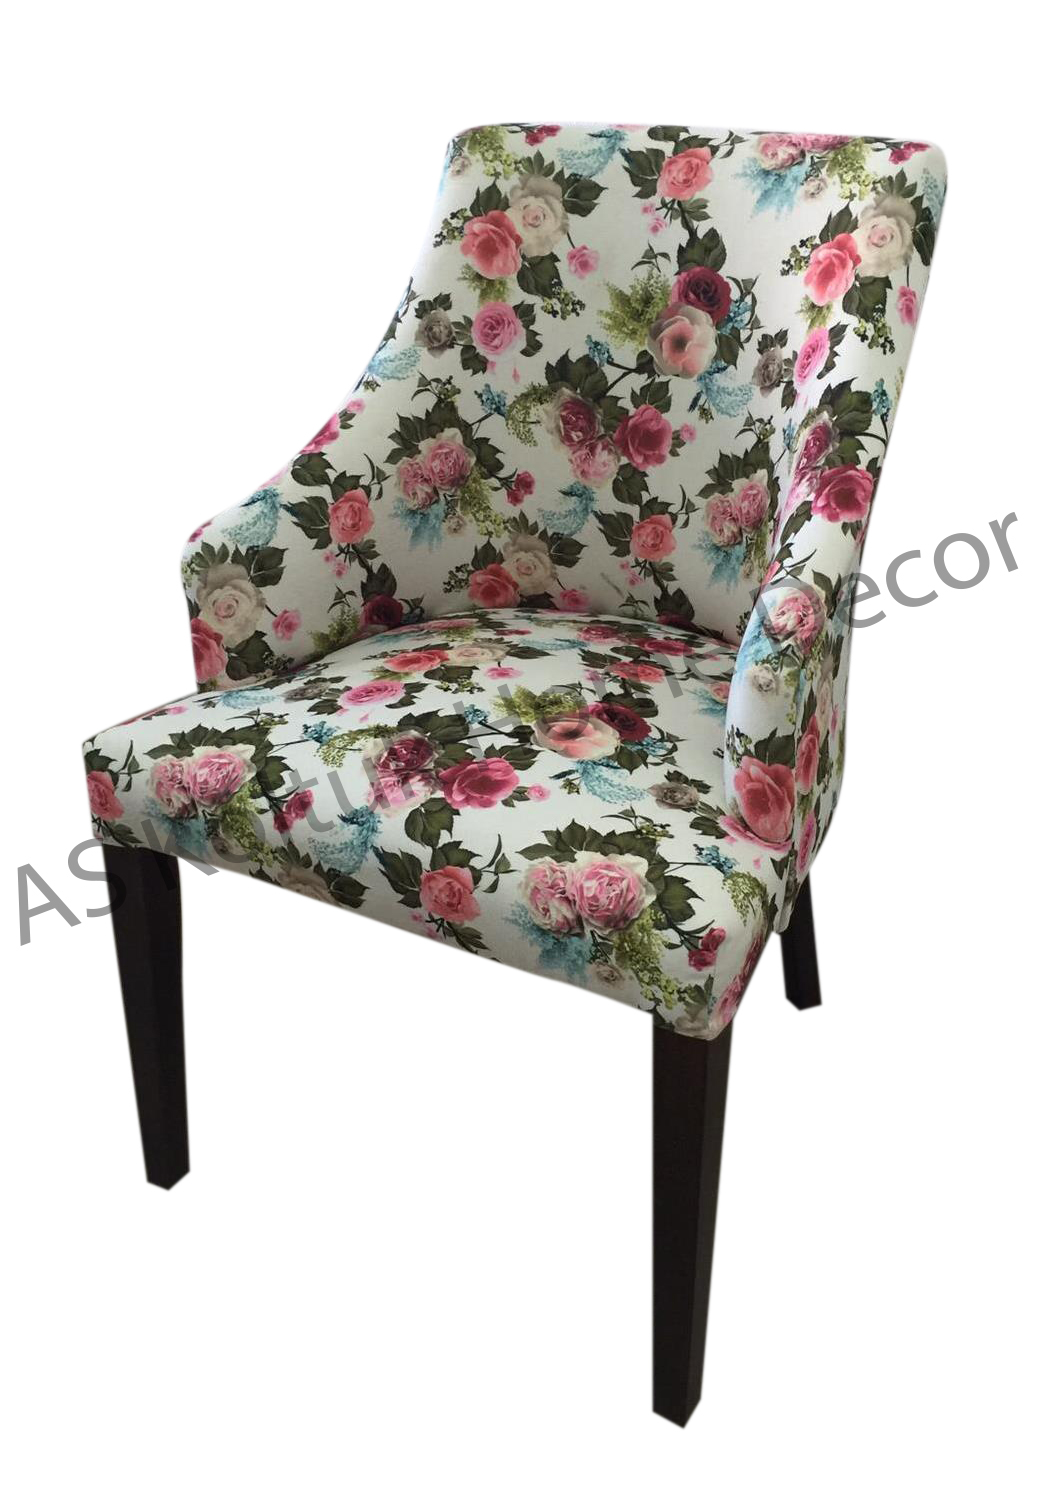 Floral Wingback Chair As Koltuk Home Decor For Sale Modern Floral Wing Chair